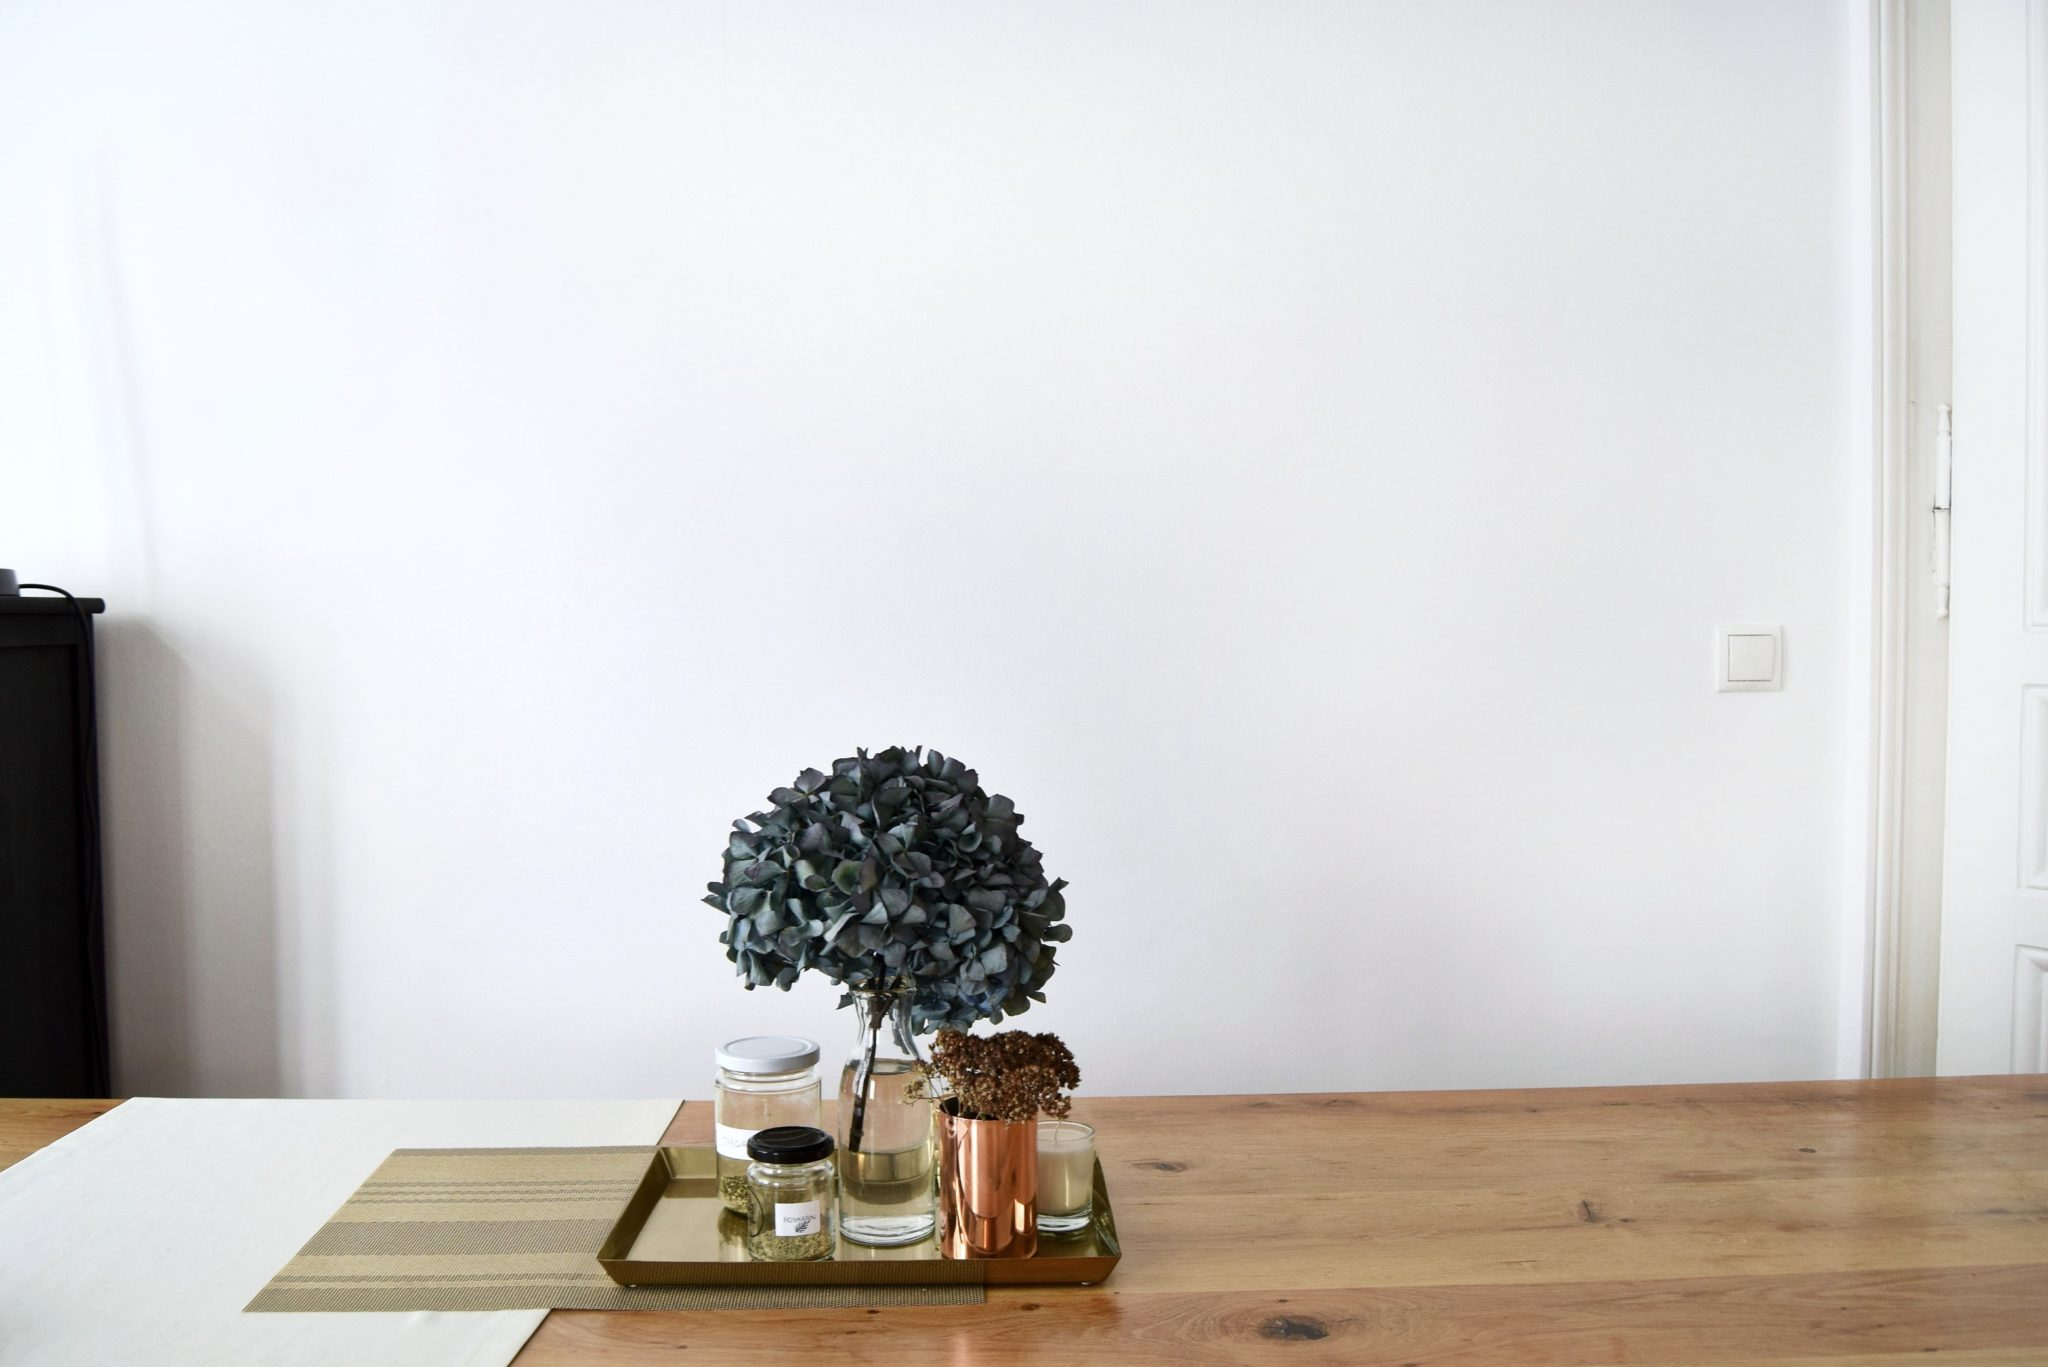 table-tray-flowers-jars-white-wall